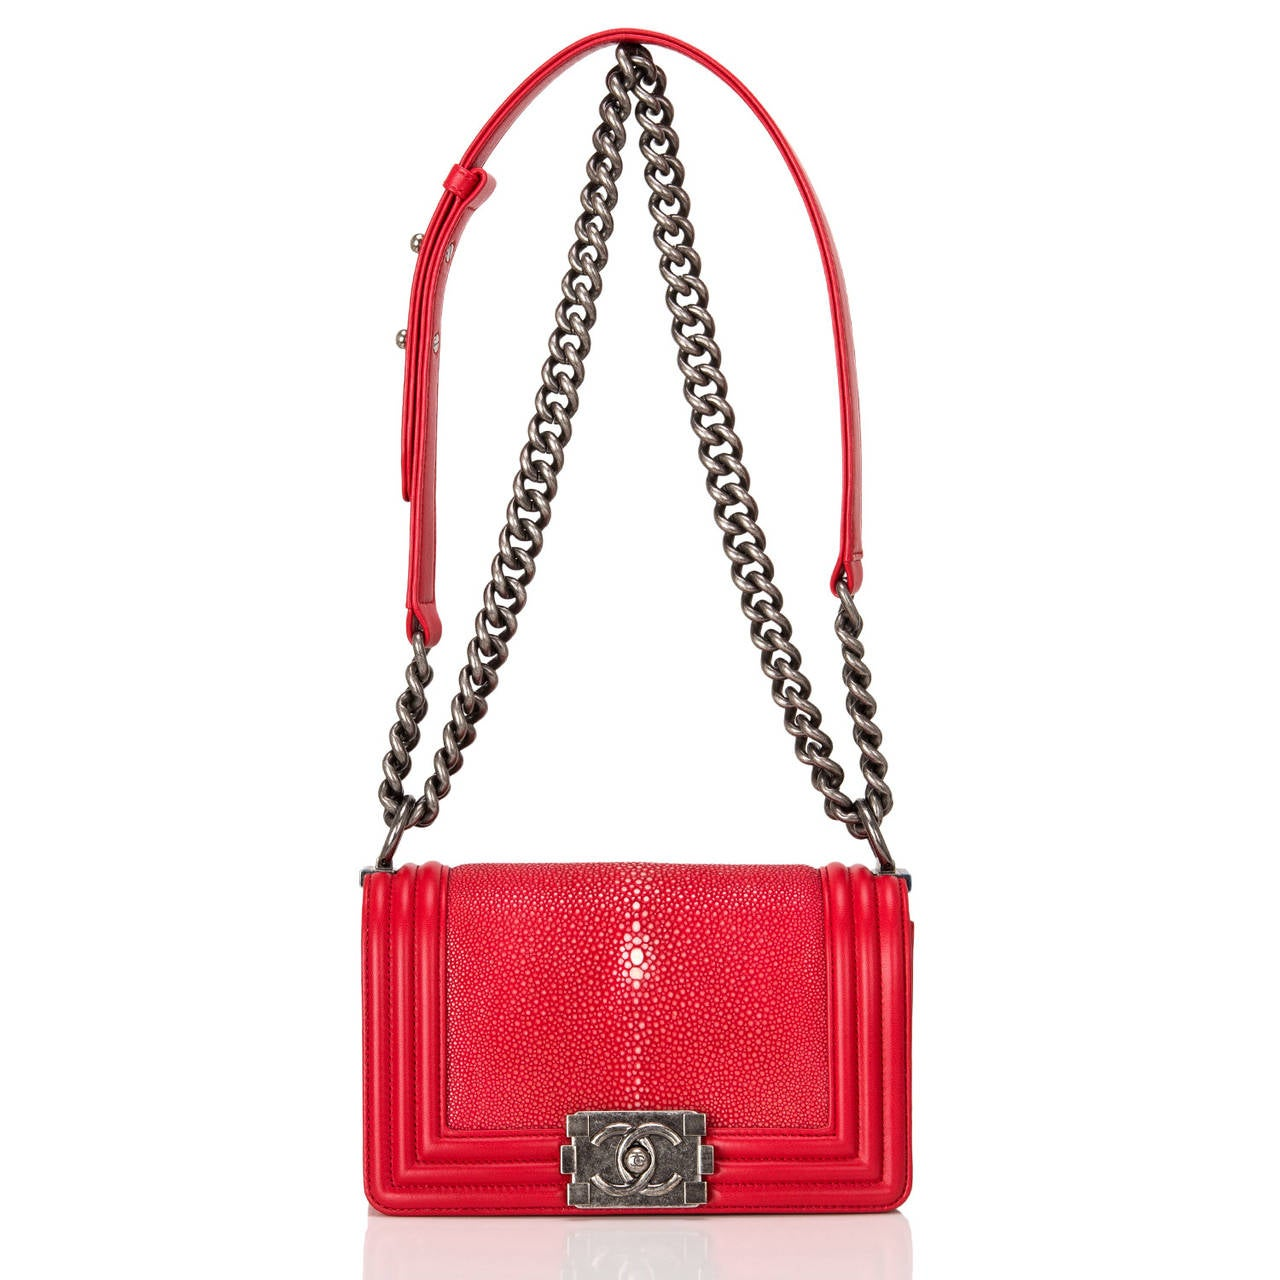 Chanel Red Stingray Small Boy Bag For Sale 1